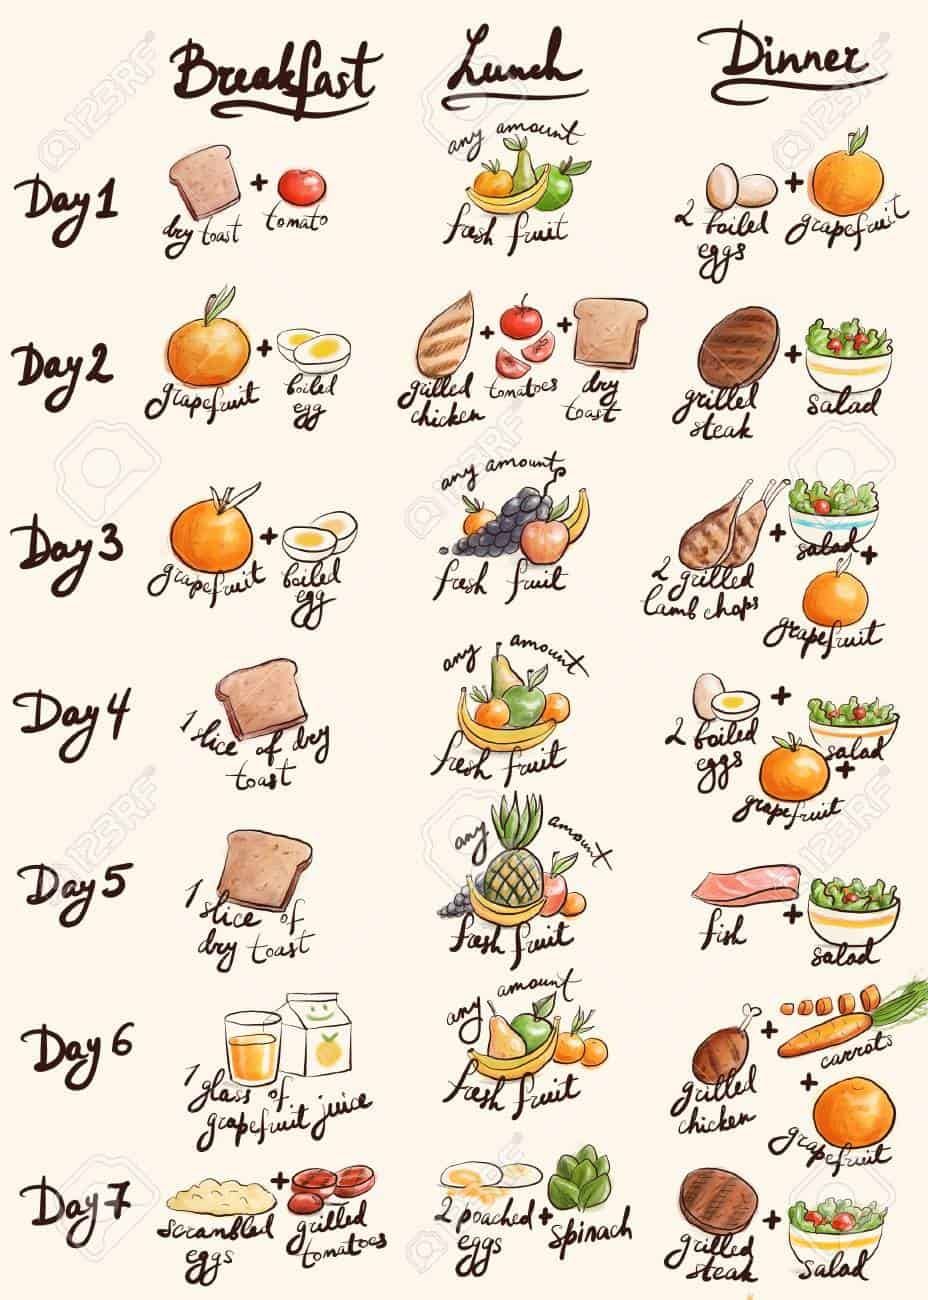 Tips For Diet Plans That Work